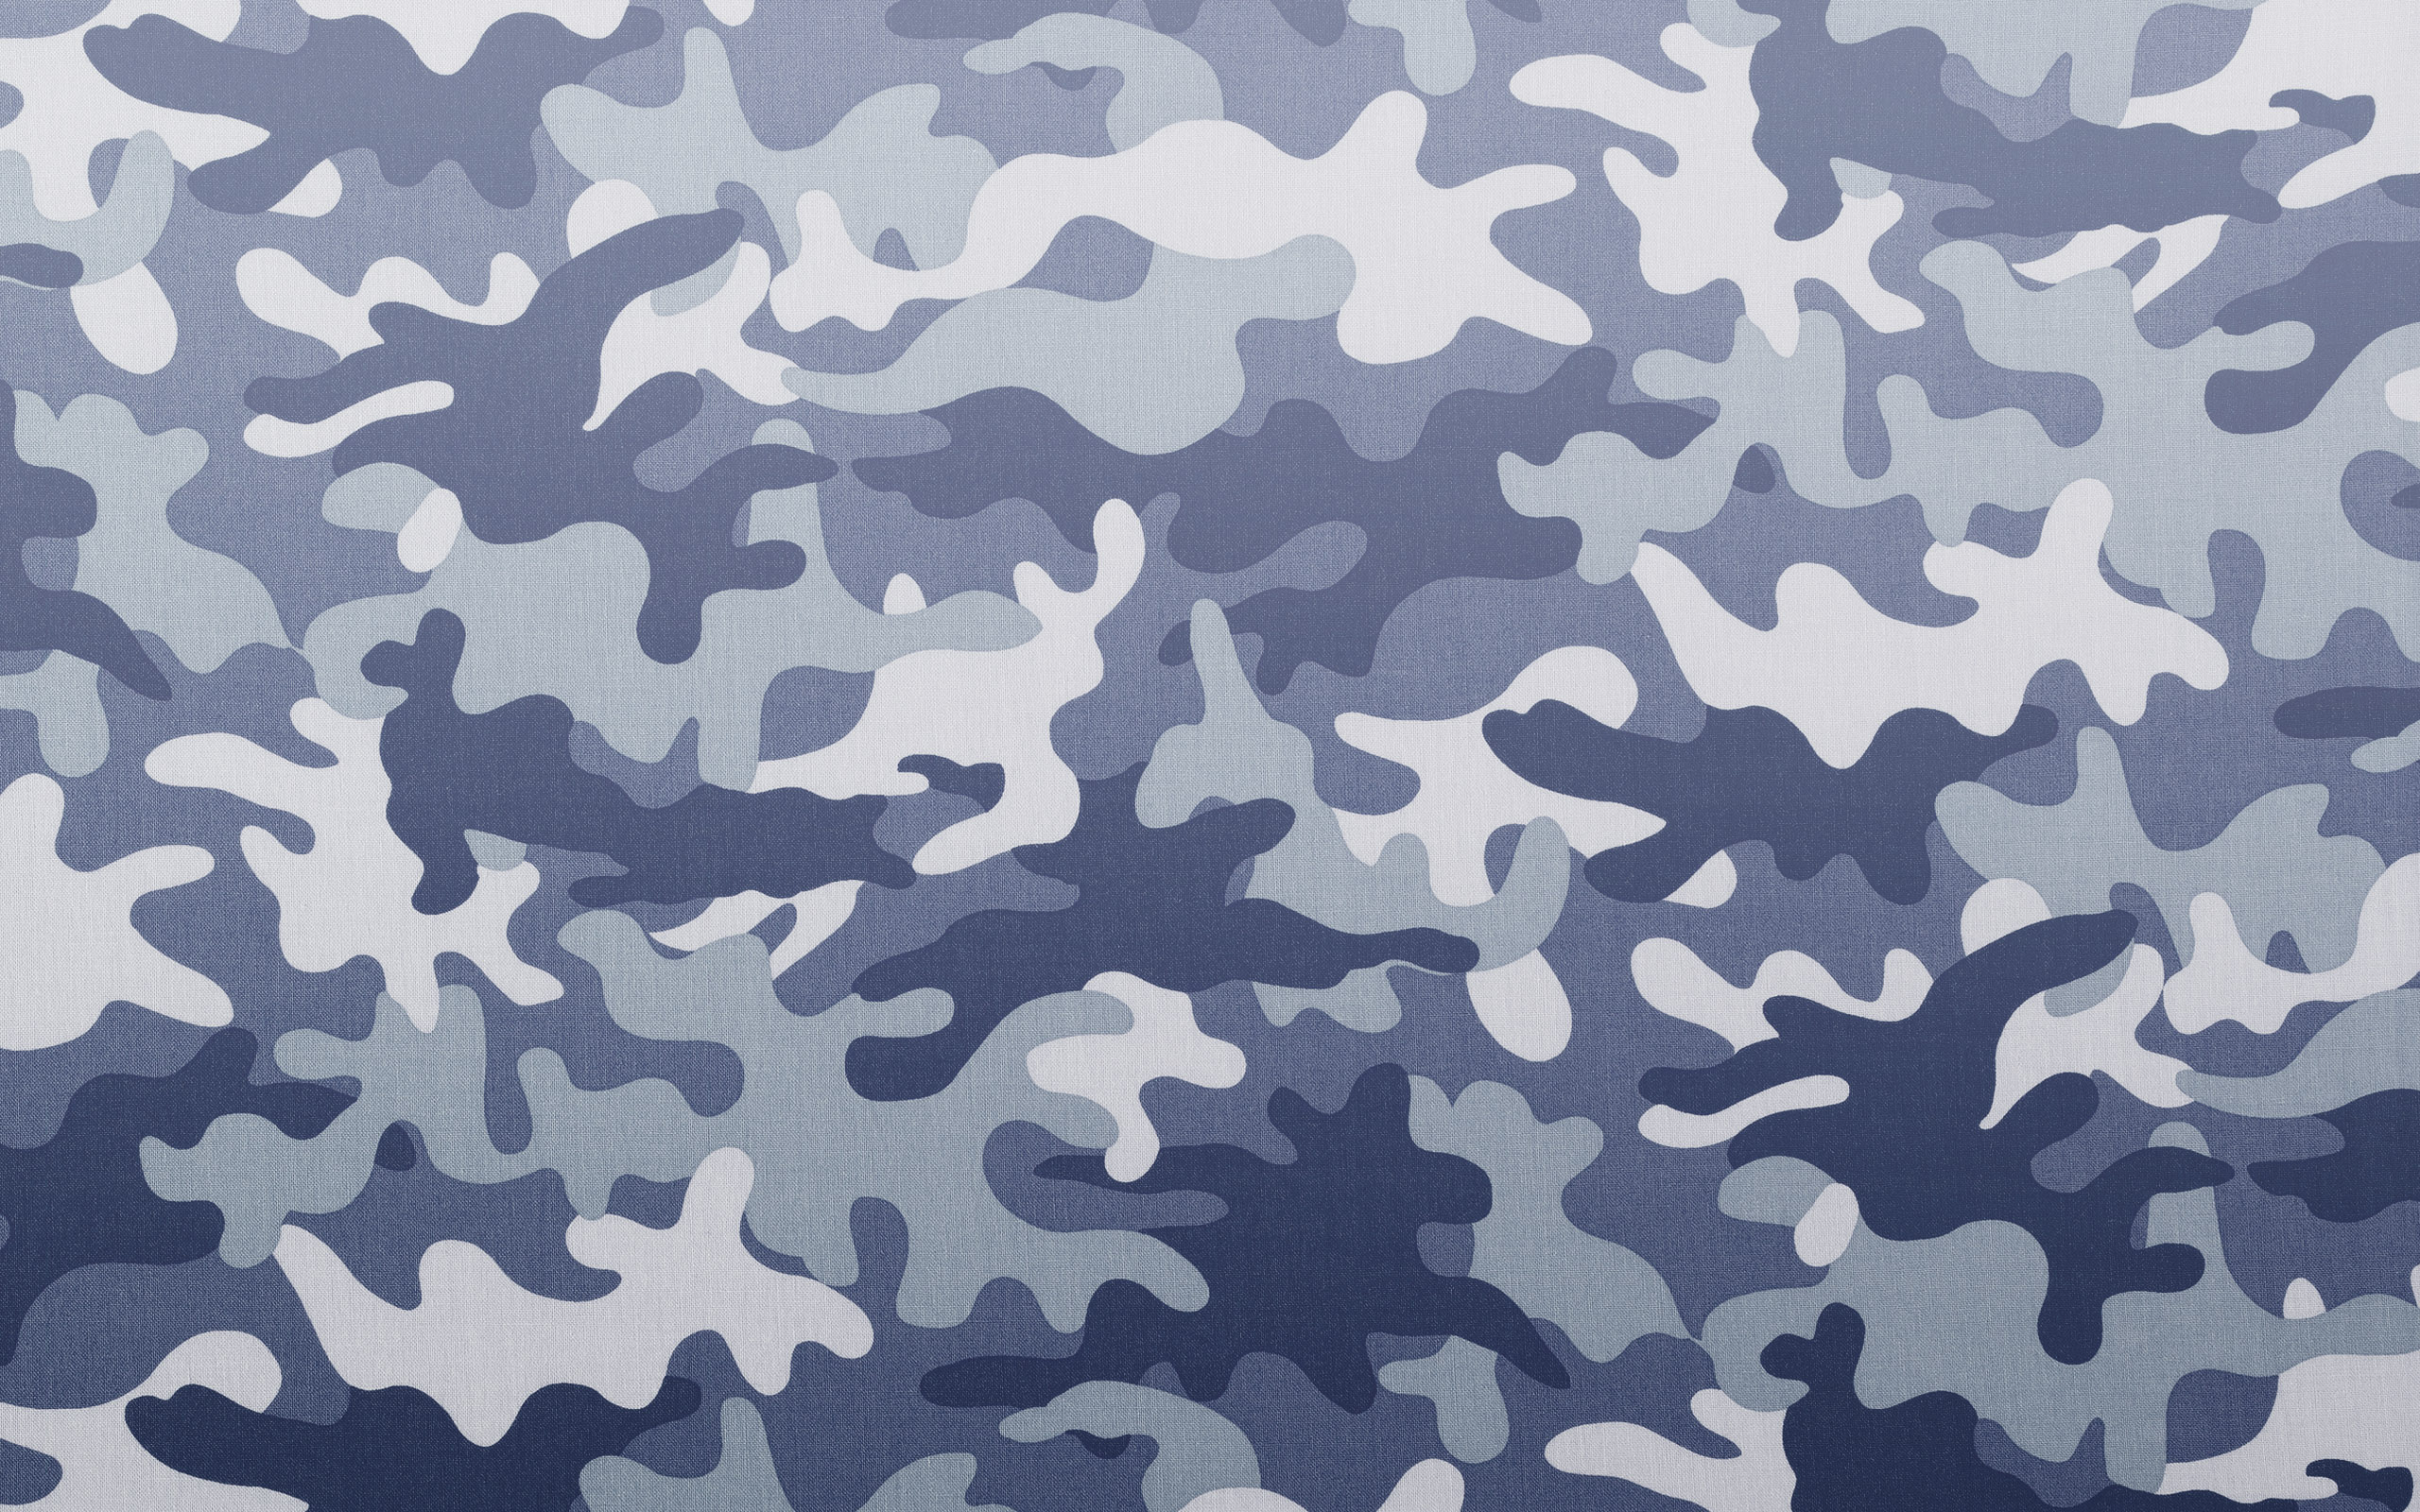 texture cloth, camouflage, background, texture camouflage